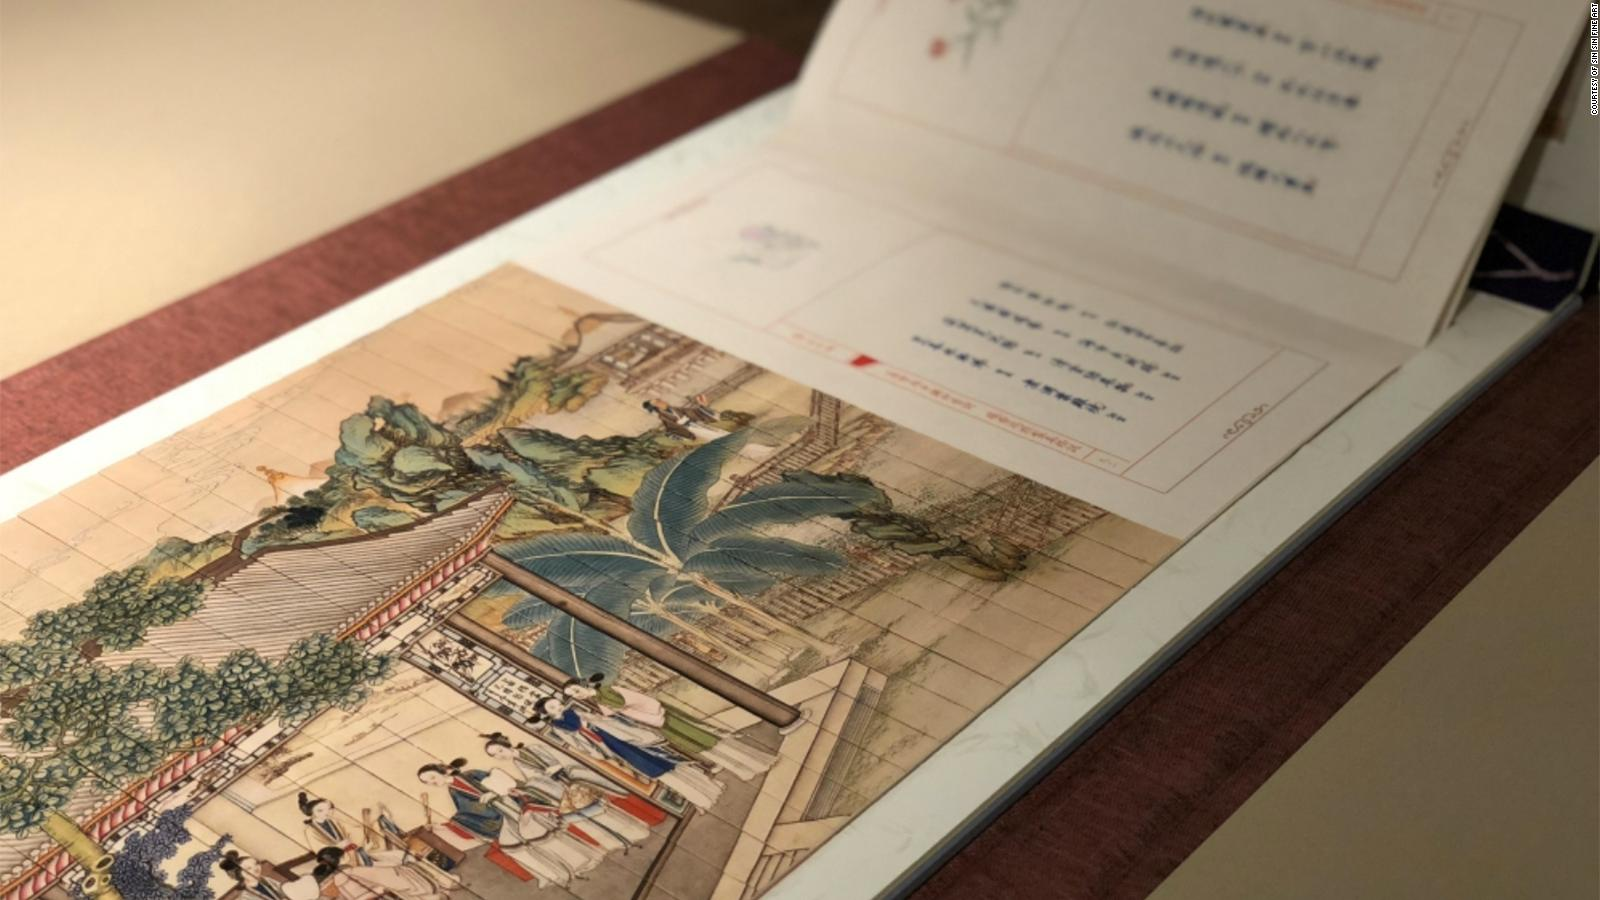 The art of chinas dragon scale bookbinding cnn style gumiabroncs Image collections